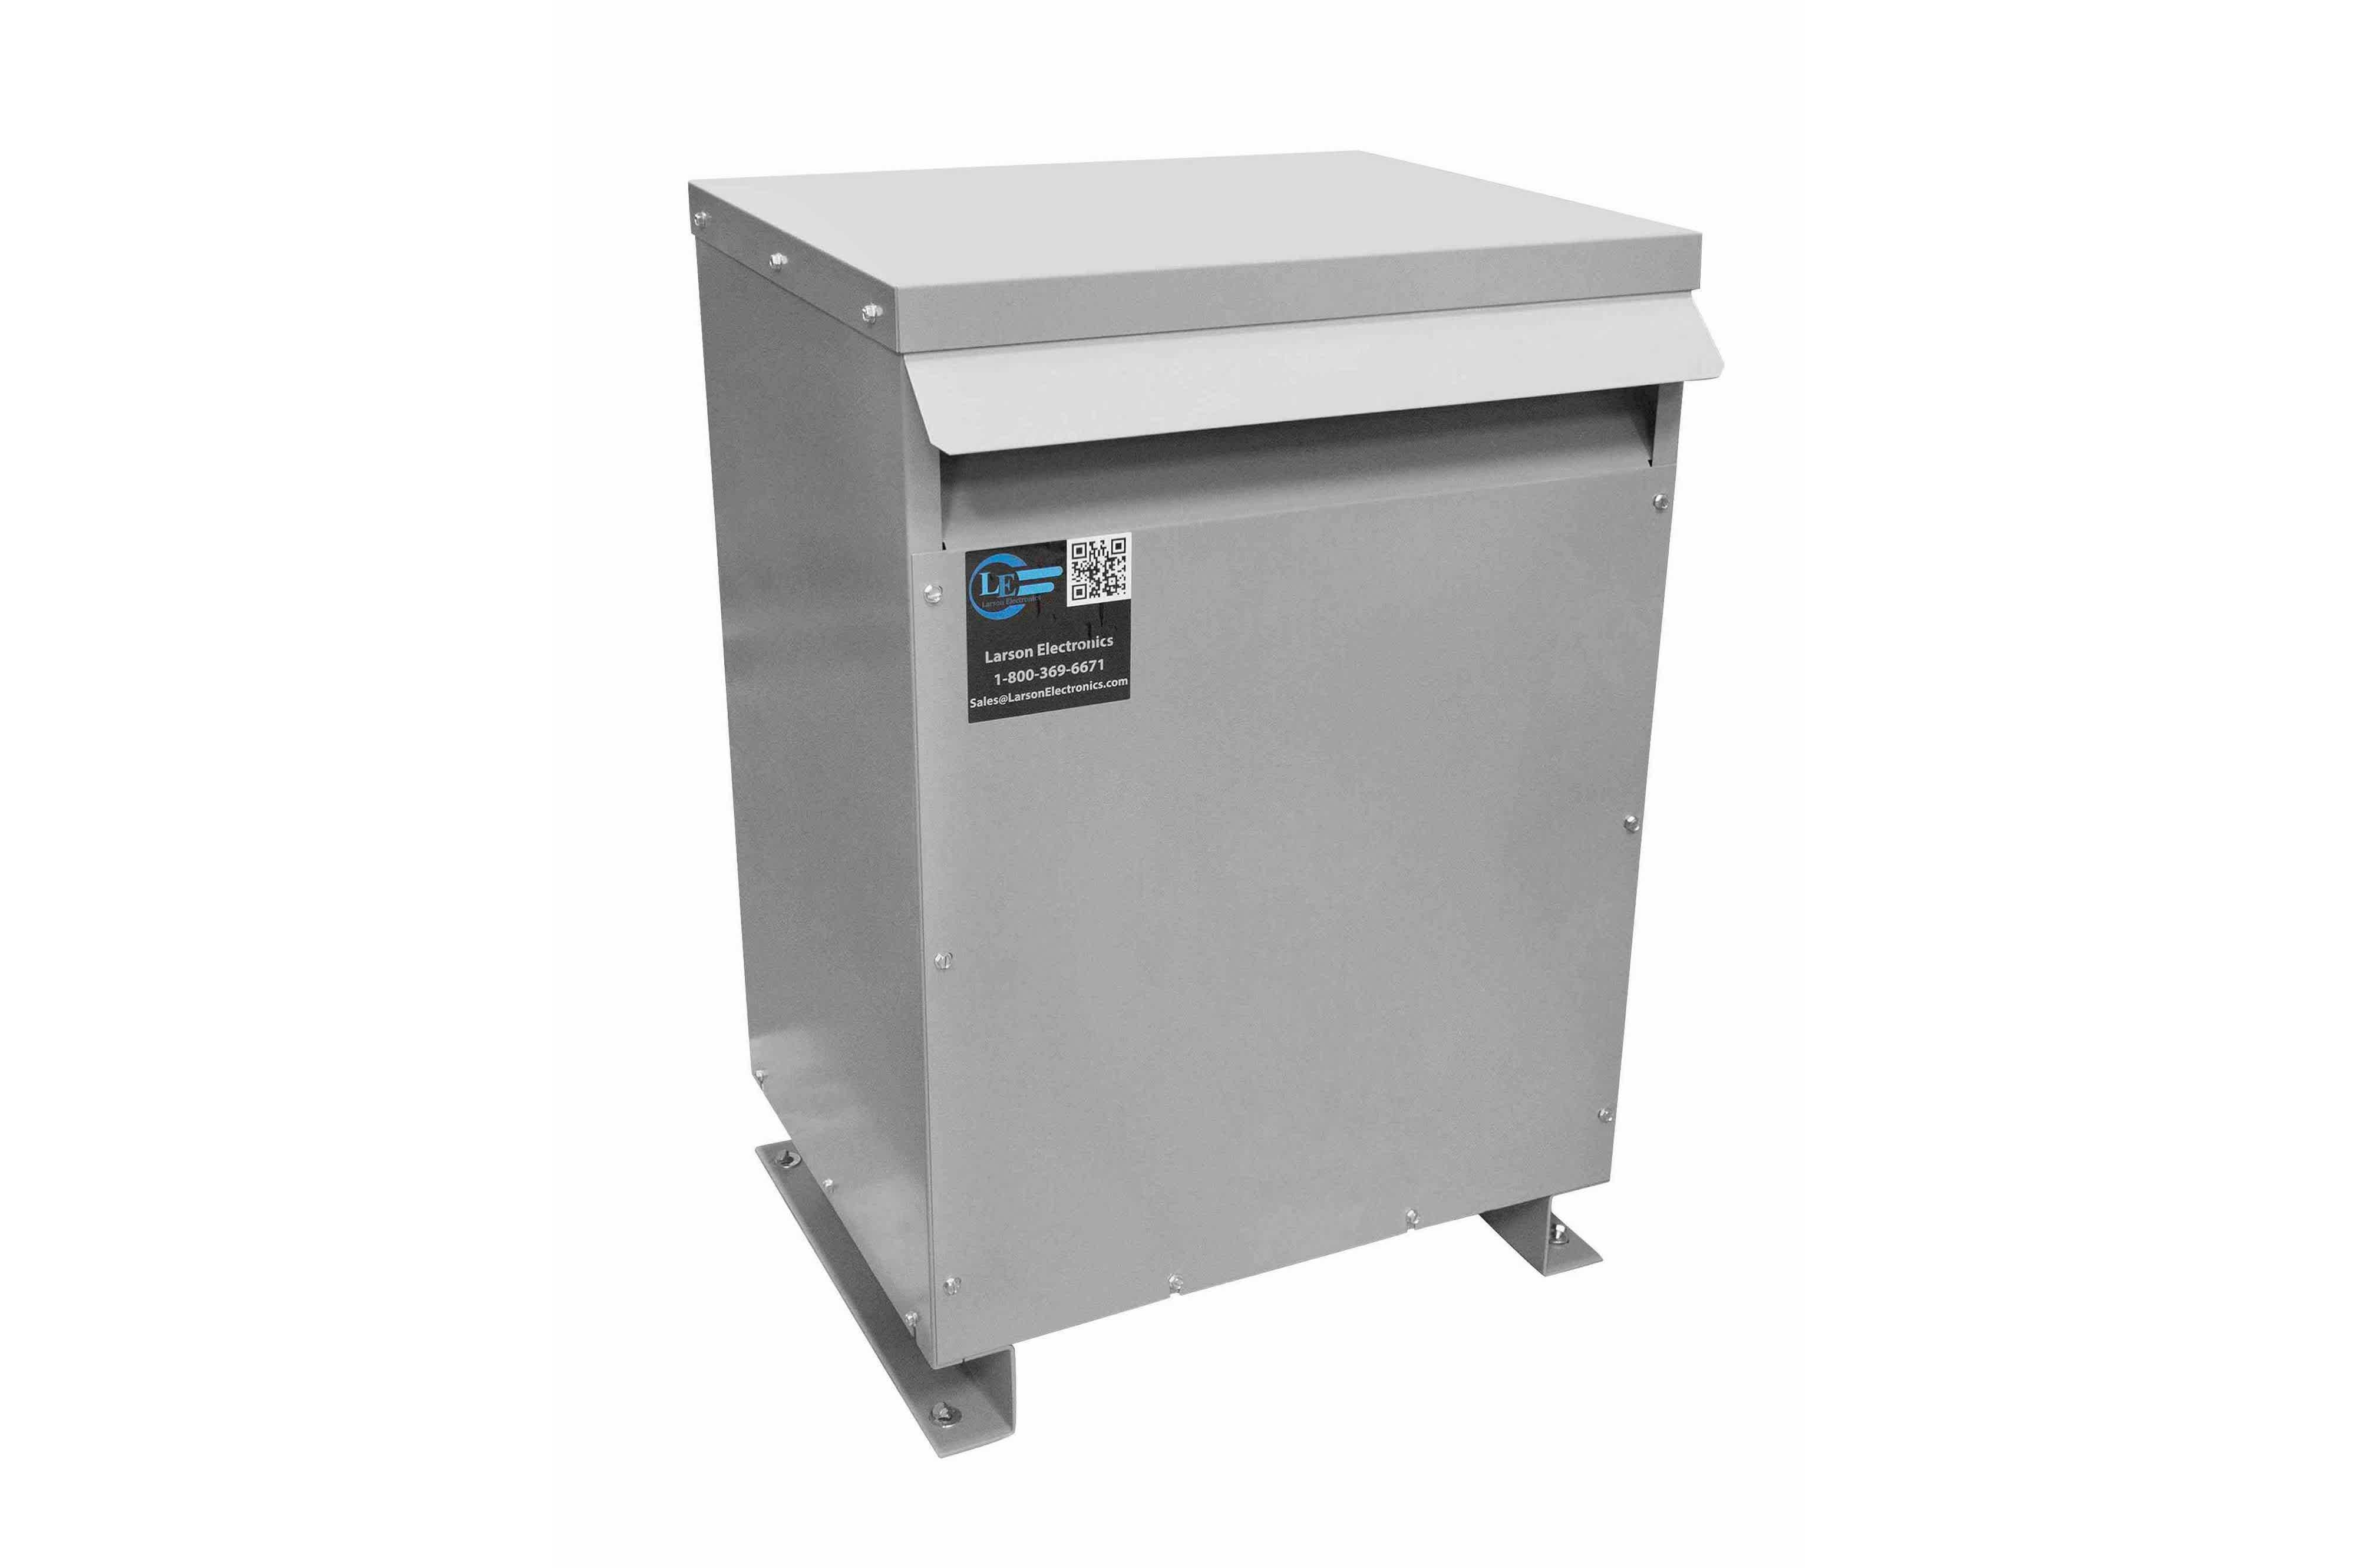 80 kVA 3PH Isolation Transformer, 575V Delta Primary, 208V Delta Secondary, N3R, Ventilated, 60 Hz